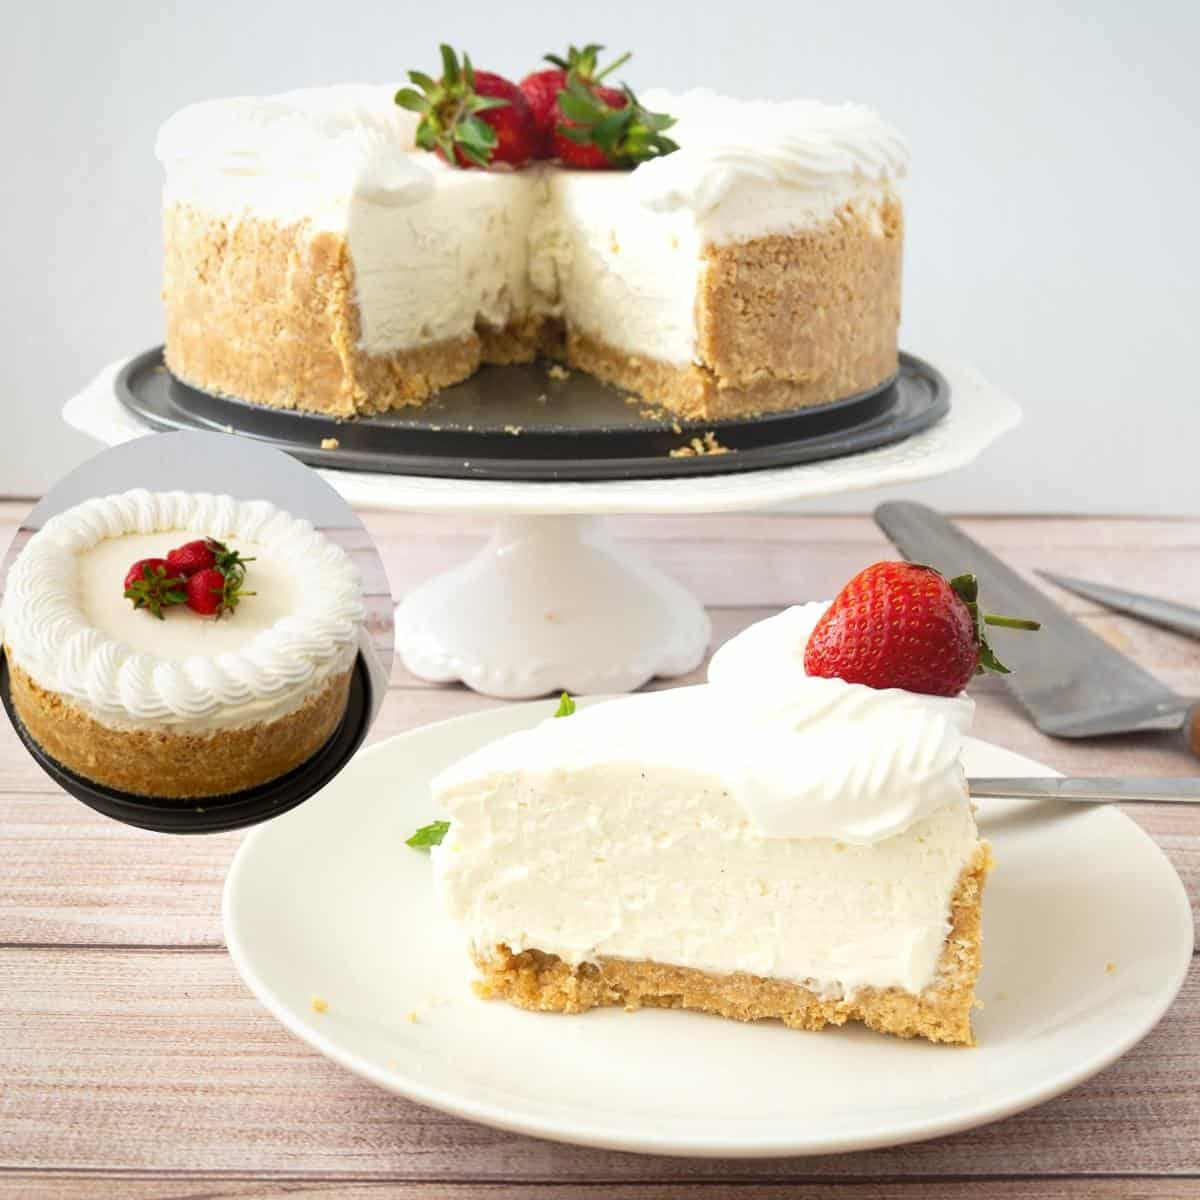 Slice of cheesecake on a cake stand.